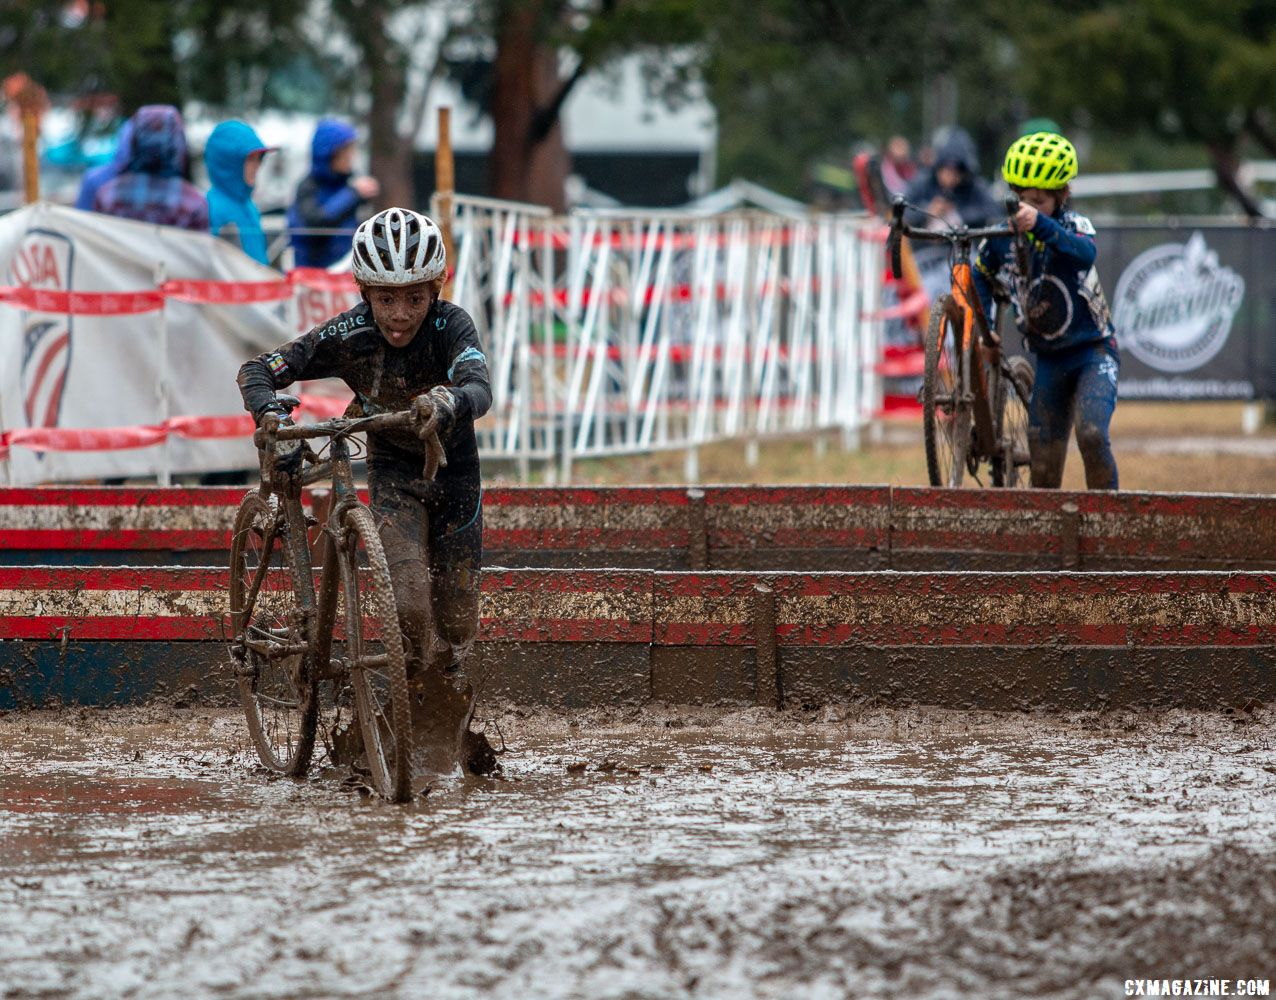 Waldman is hoping he'll be able to do things like ride cyclocross in the mud with his grand children. Junior Men 11-12. 2018 Cyclocross National Championships, Louisville, KY. © A. Yee / Cyclocross Magazine